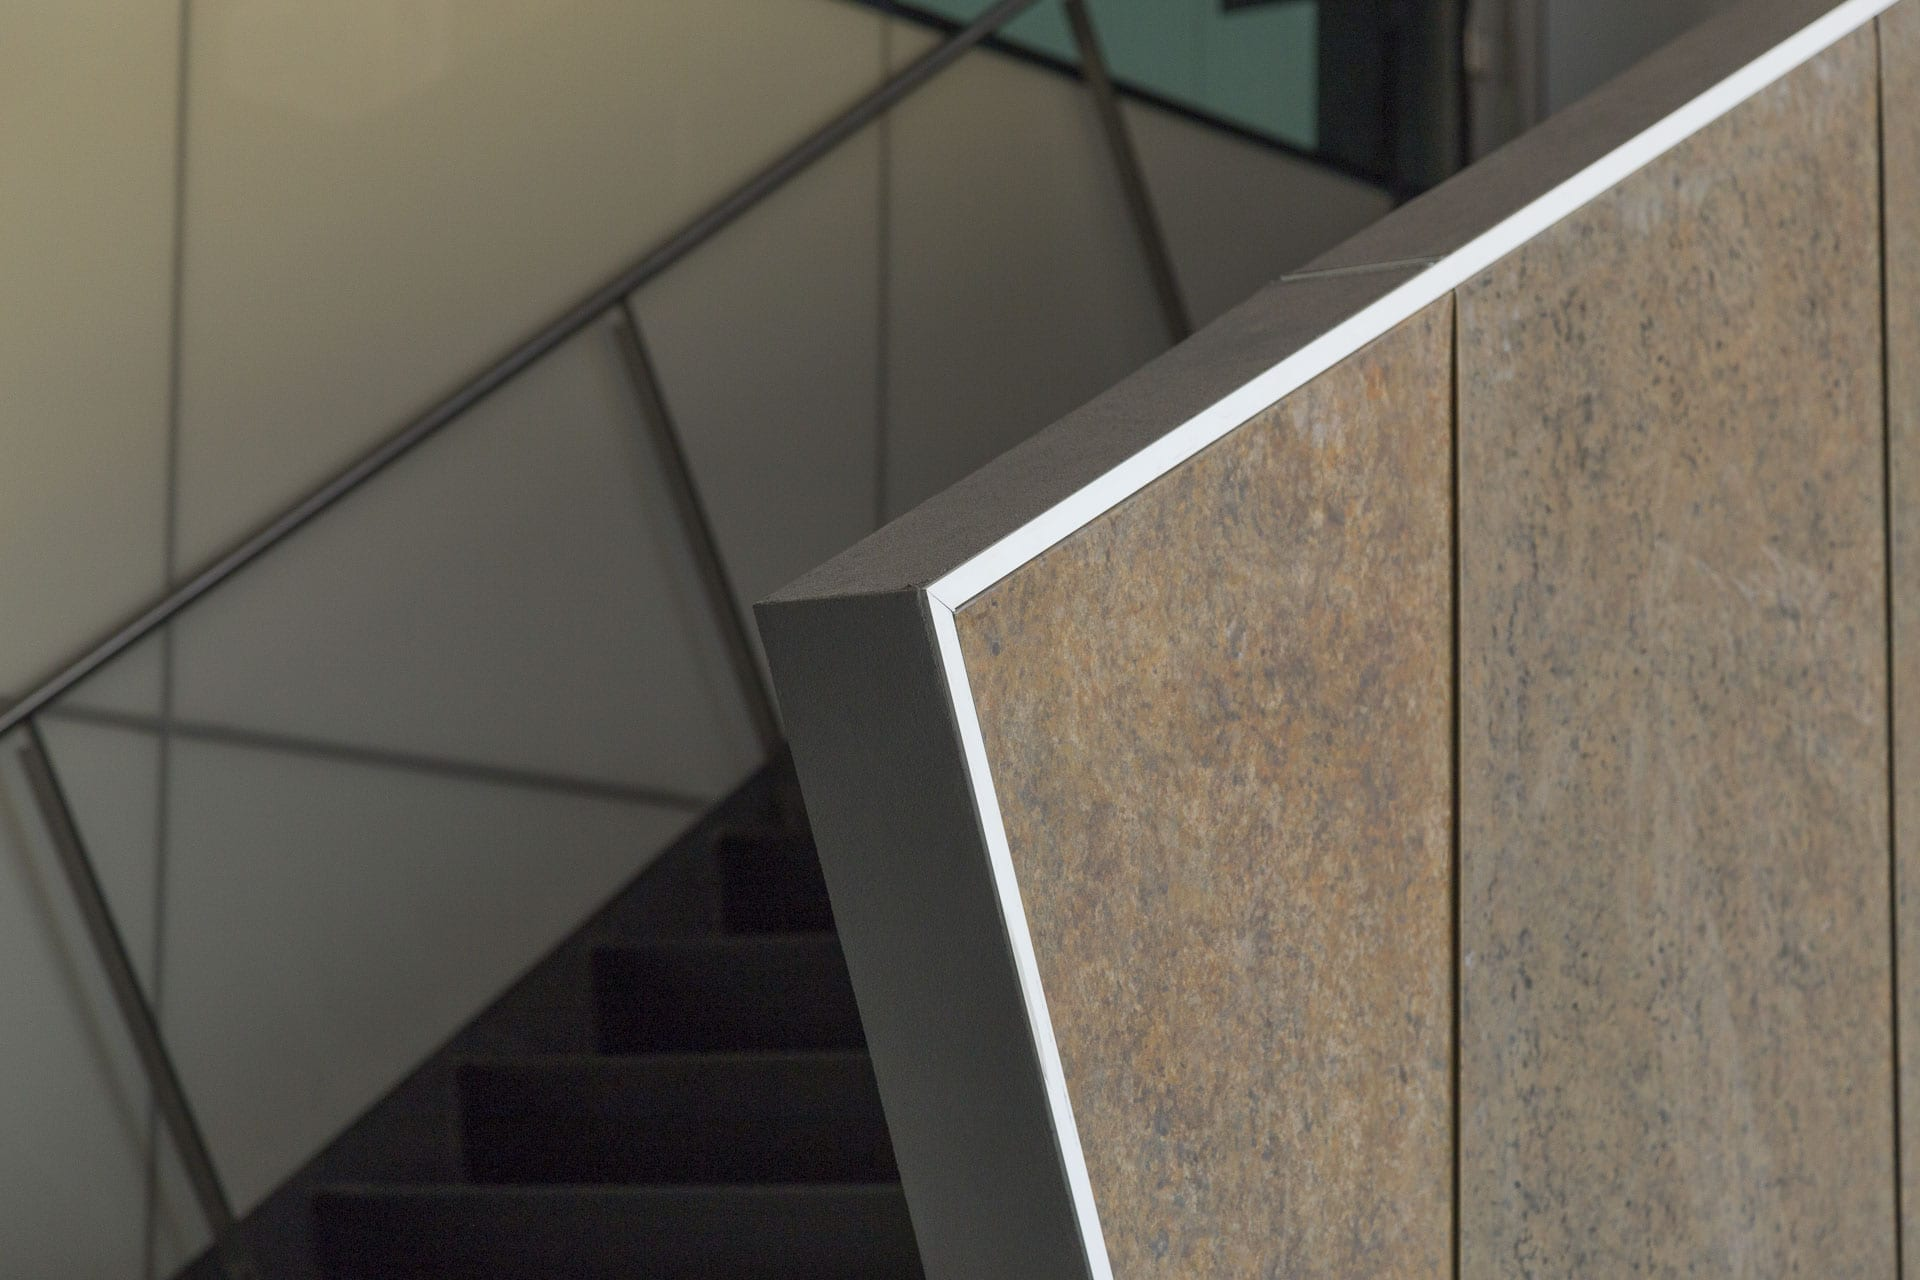 Detail of the custom zinc interior atrium staircase at the McMurtry Building in Stanford, California.